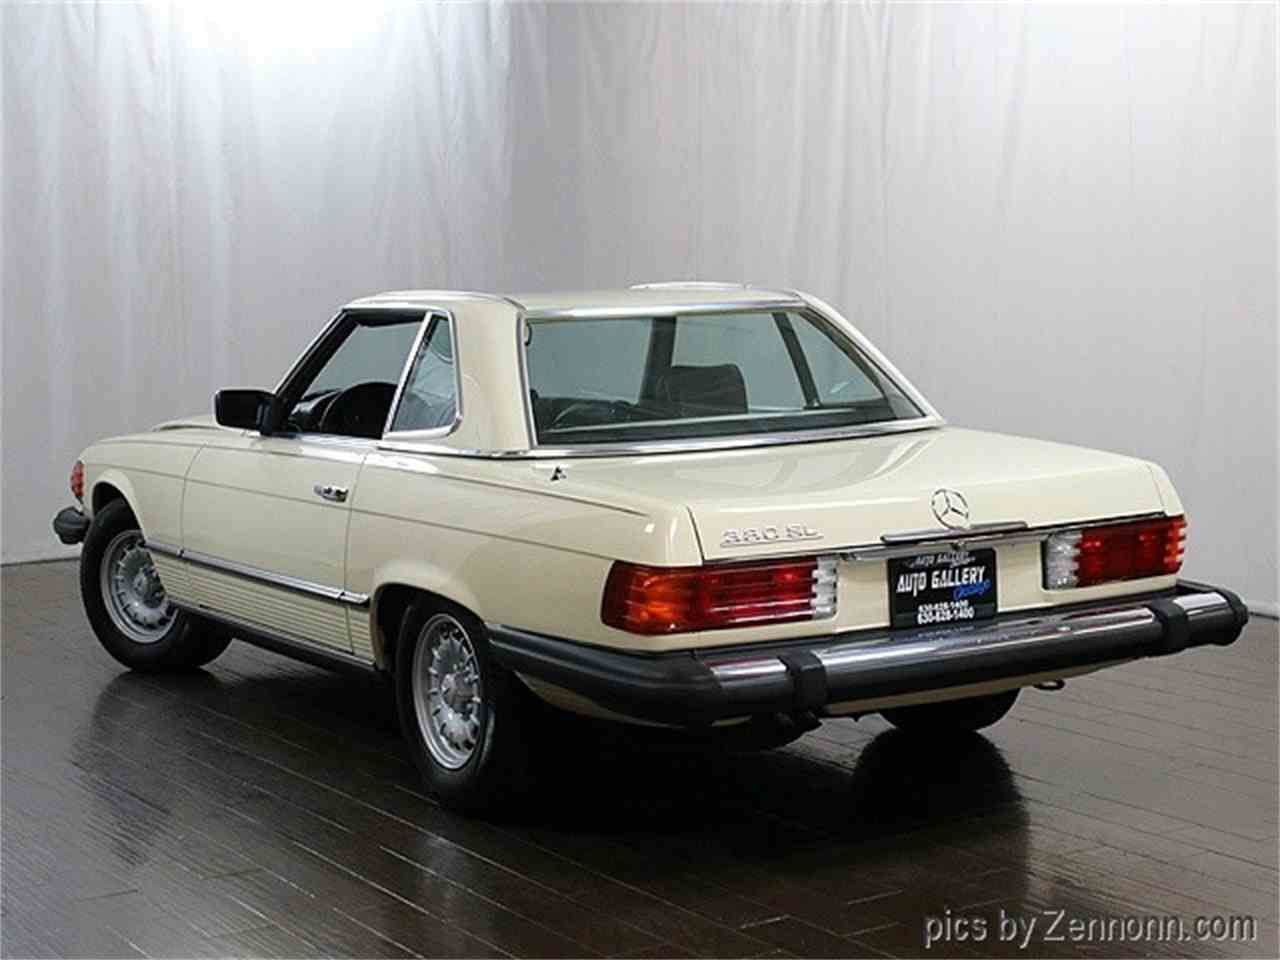 Large Picture of 1981 Mercedes-Benz 380 located in Illinois - $14,990.00 Offered by Auto Gallery Chicago - MH10